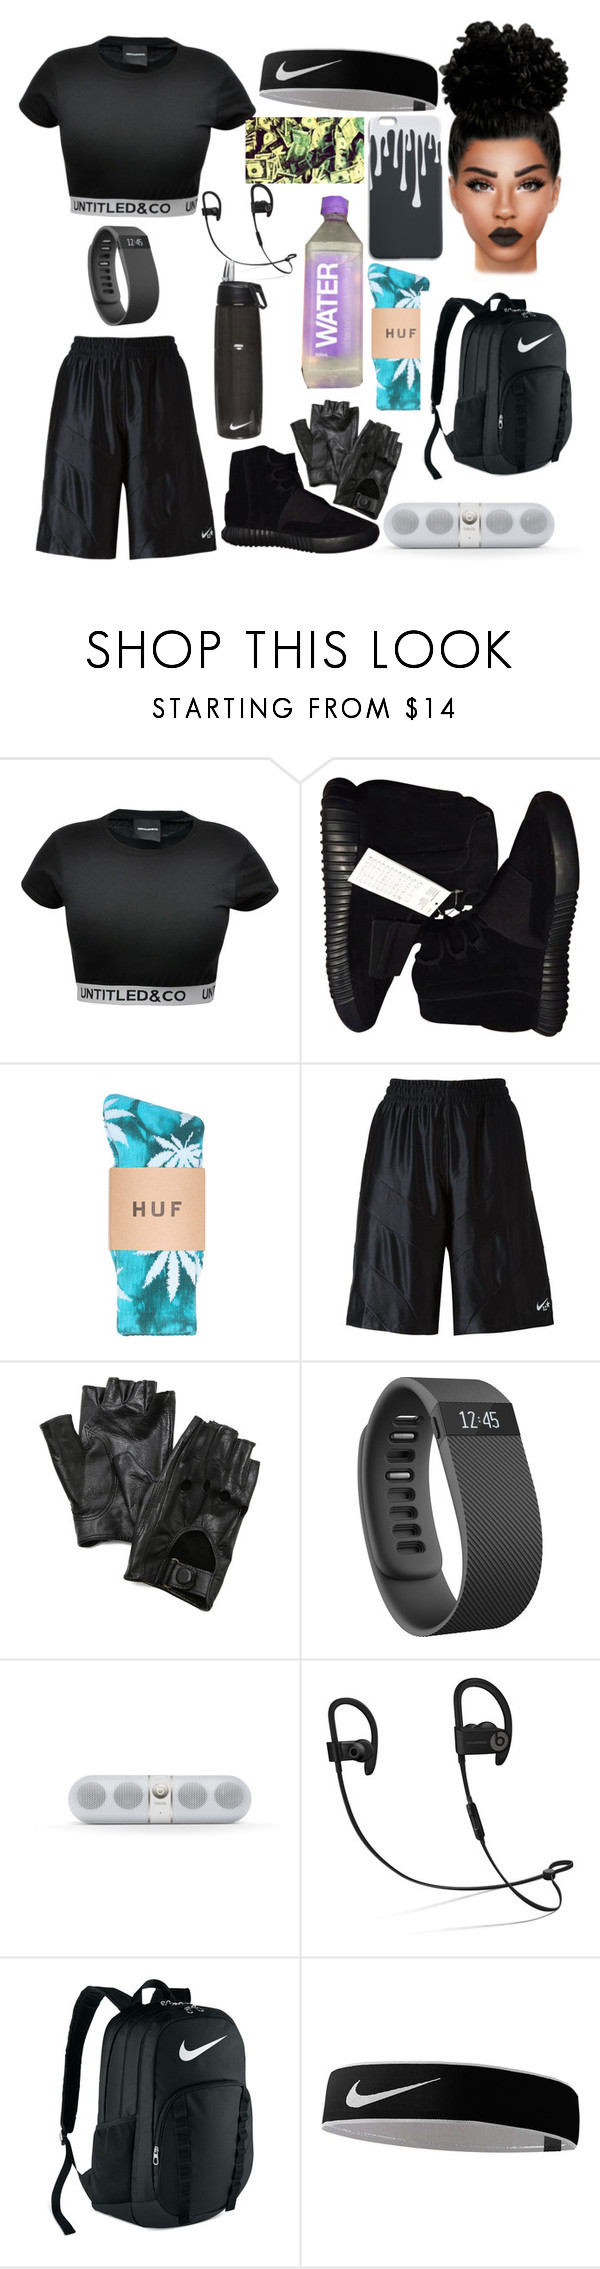 """""""Untitled #70"""" by lina-6-6 ❤ liked on Polyvore featuring CO, adidas Originals, NIKE, Carolina Amato, Fitbit and Beats by Dr. Dre"""